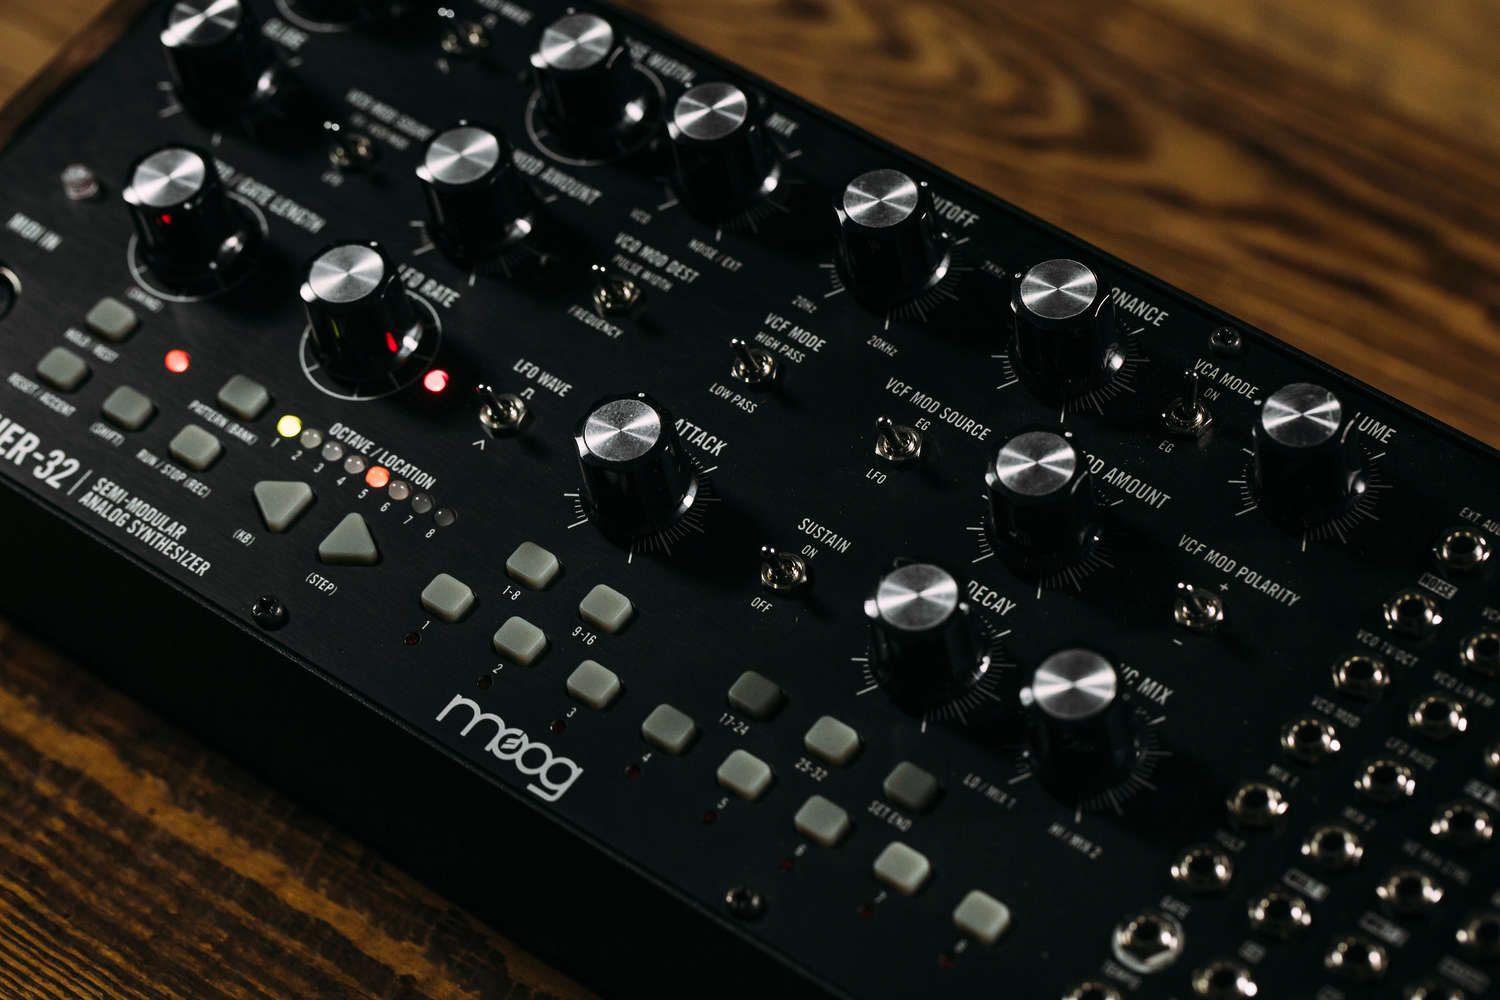 Mother-32 | Moog